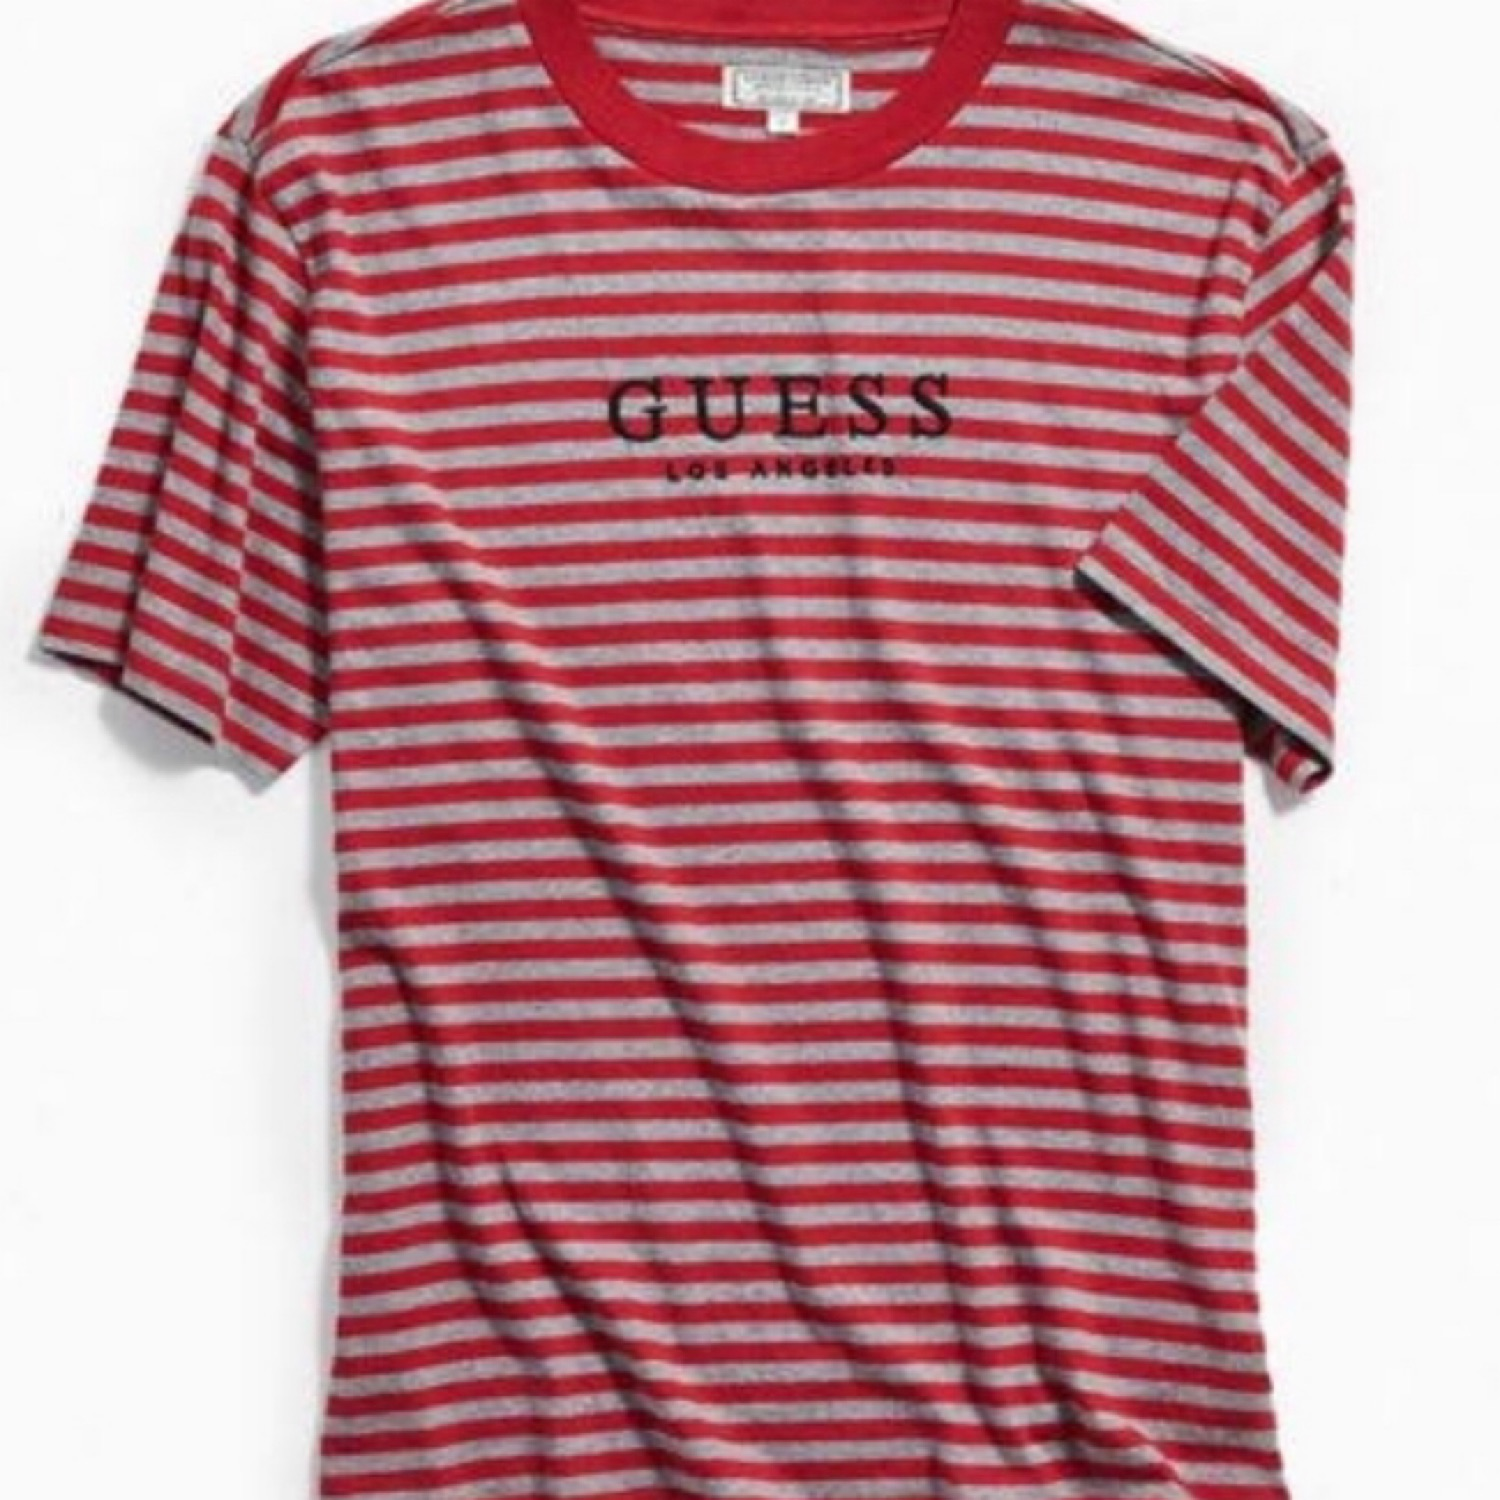 Guess Brand New Red Oversized Striped T Shirt